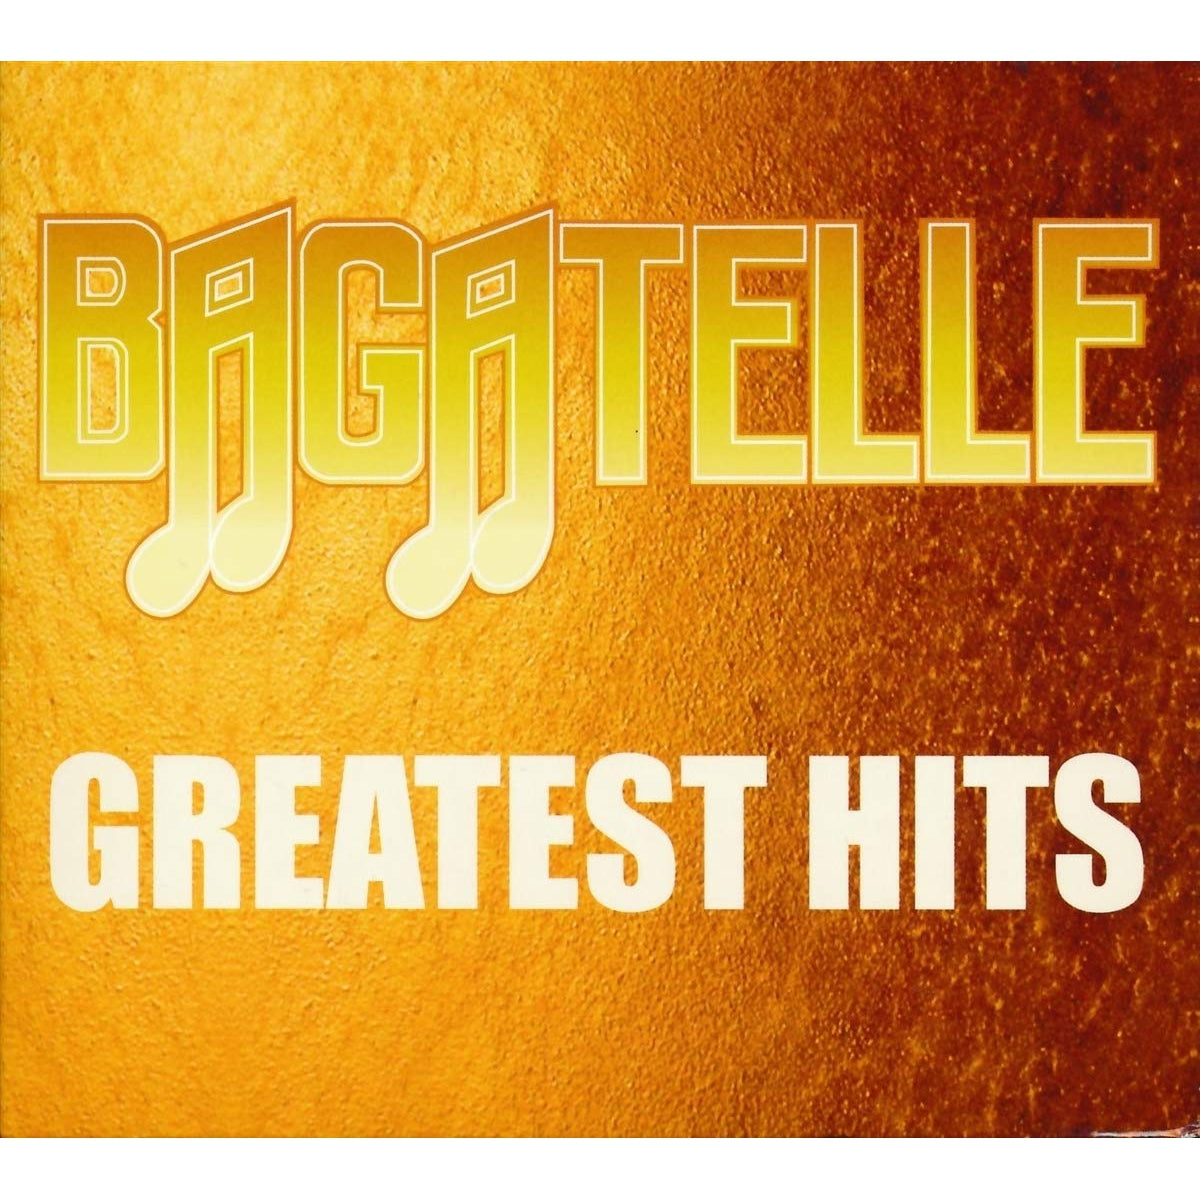 BAGATELLE: GREATEST HITS [CD]